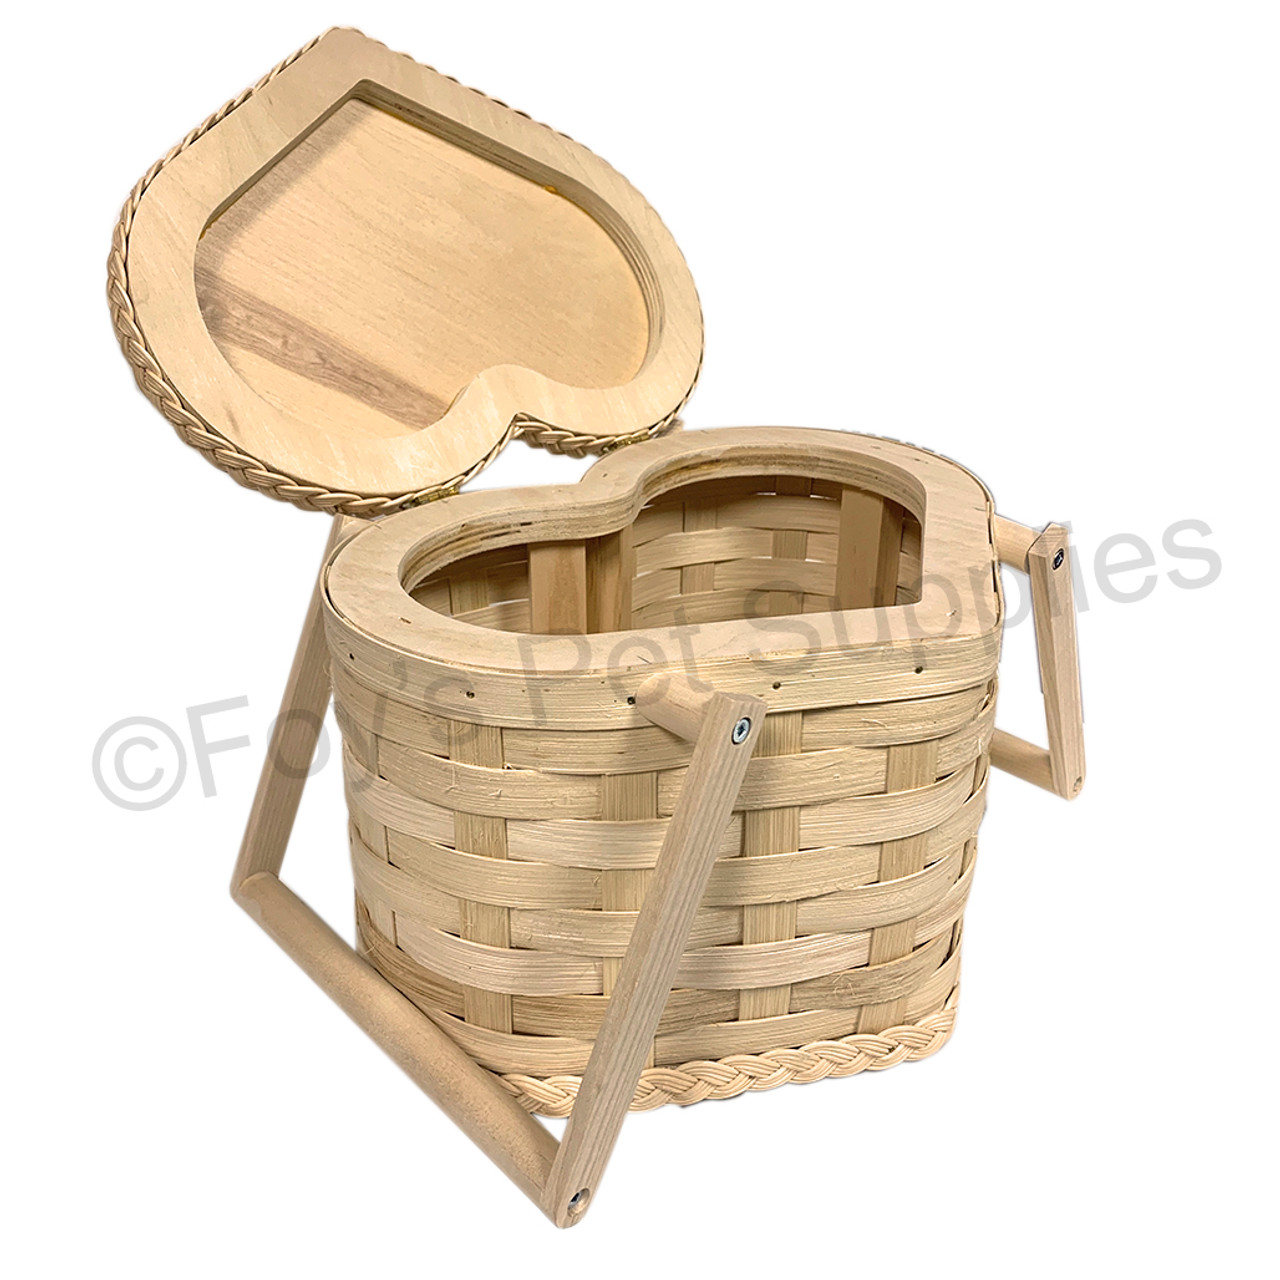 Deluxe Heart Basket - Small